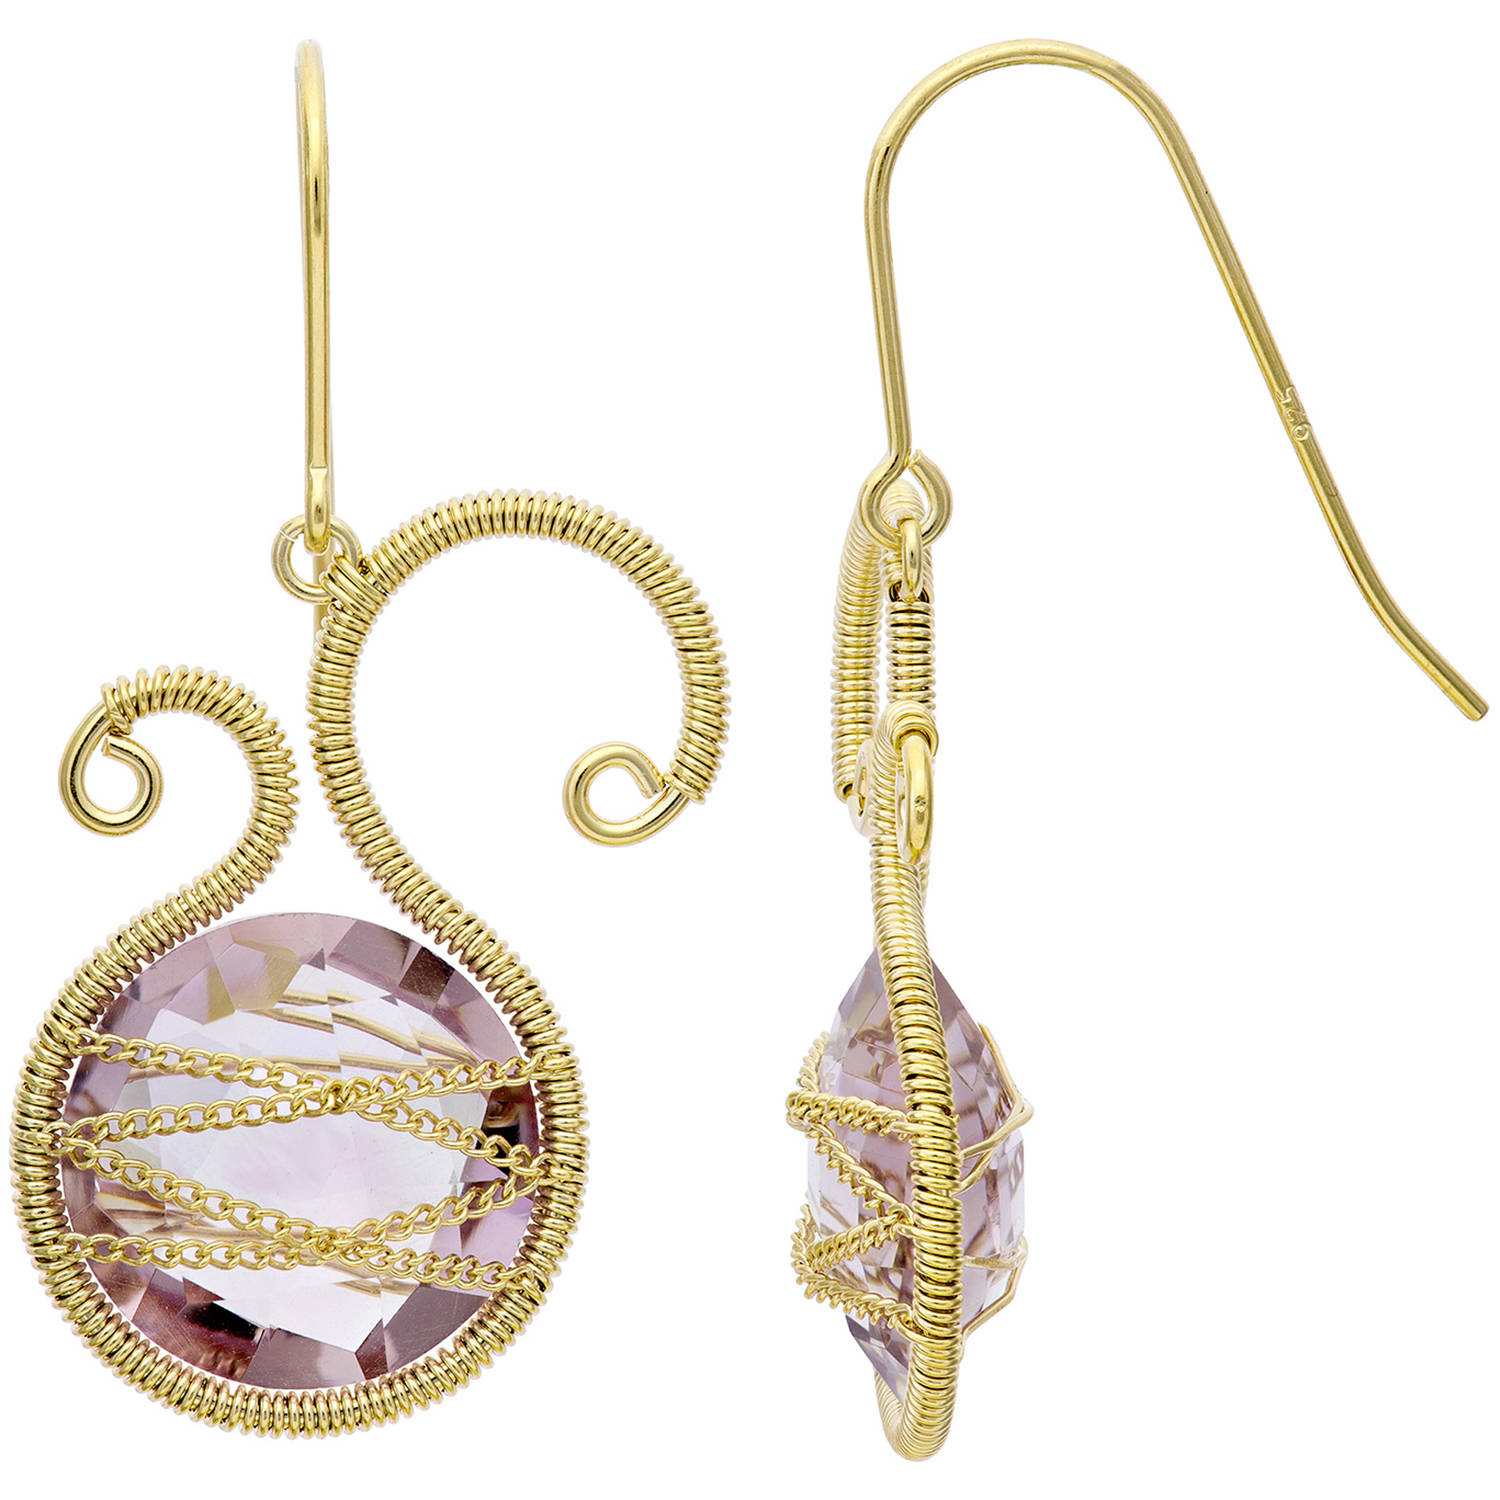 Image of 5th & Main 18kt Gold over Sterling Silver Hand-Wrapped Asymmetric Amethyst Stone Earrings